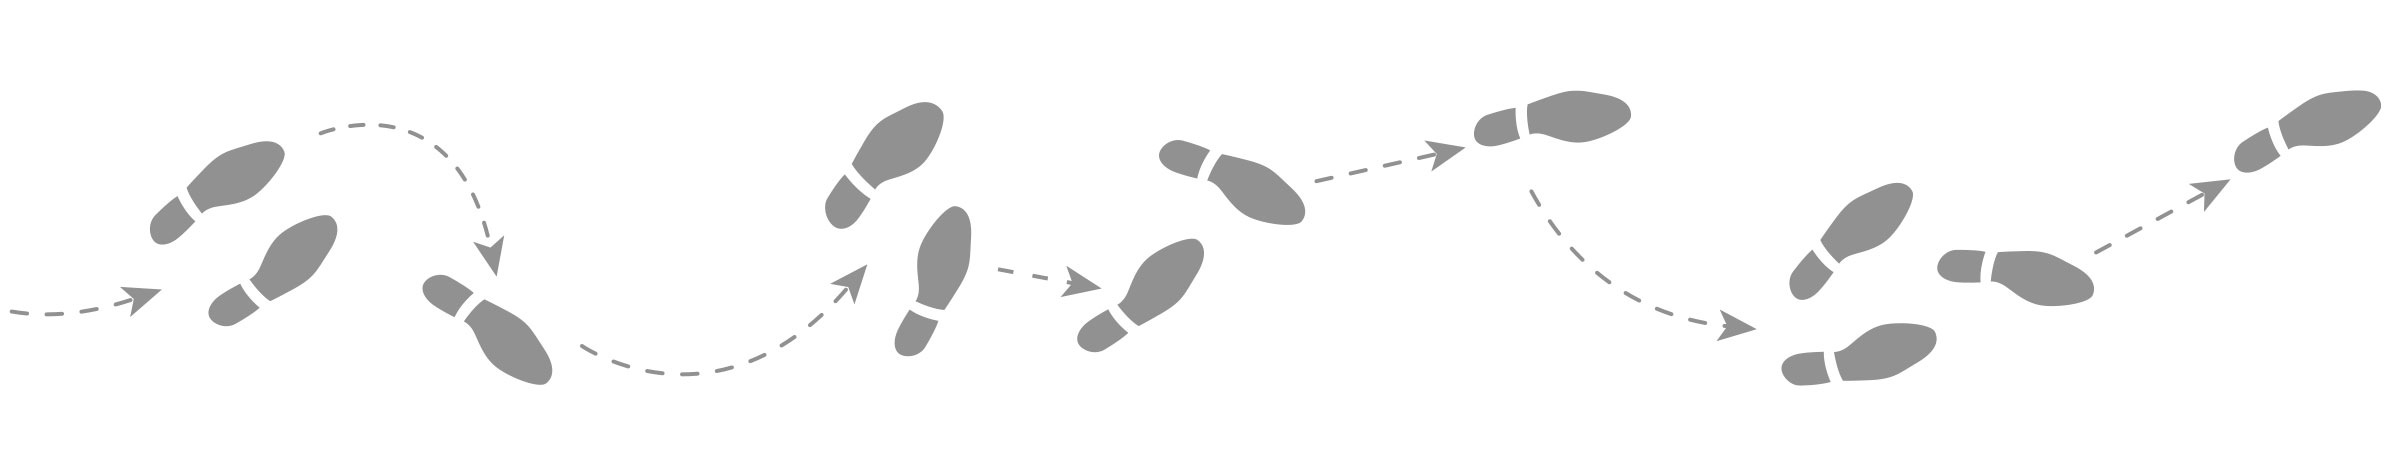 Dance Steps graphic